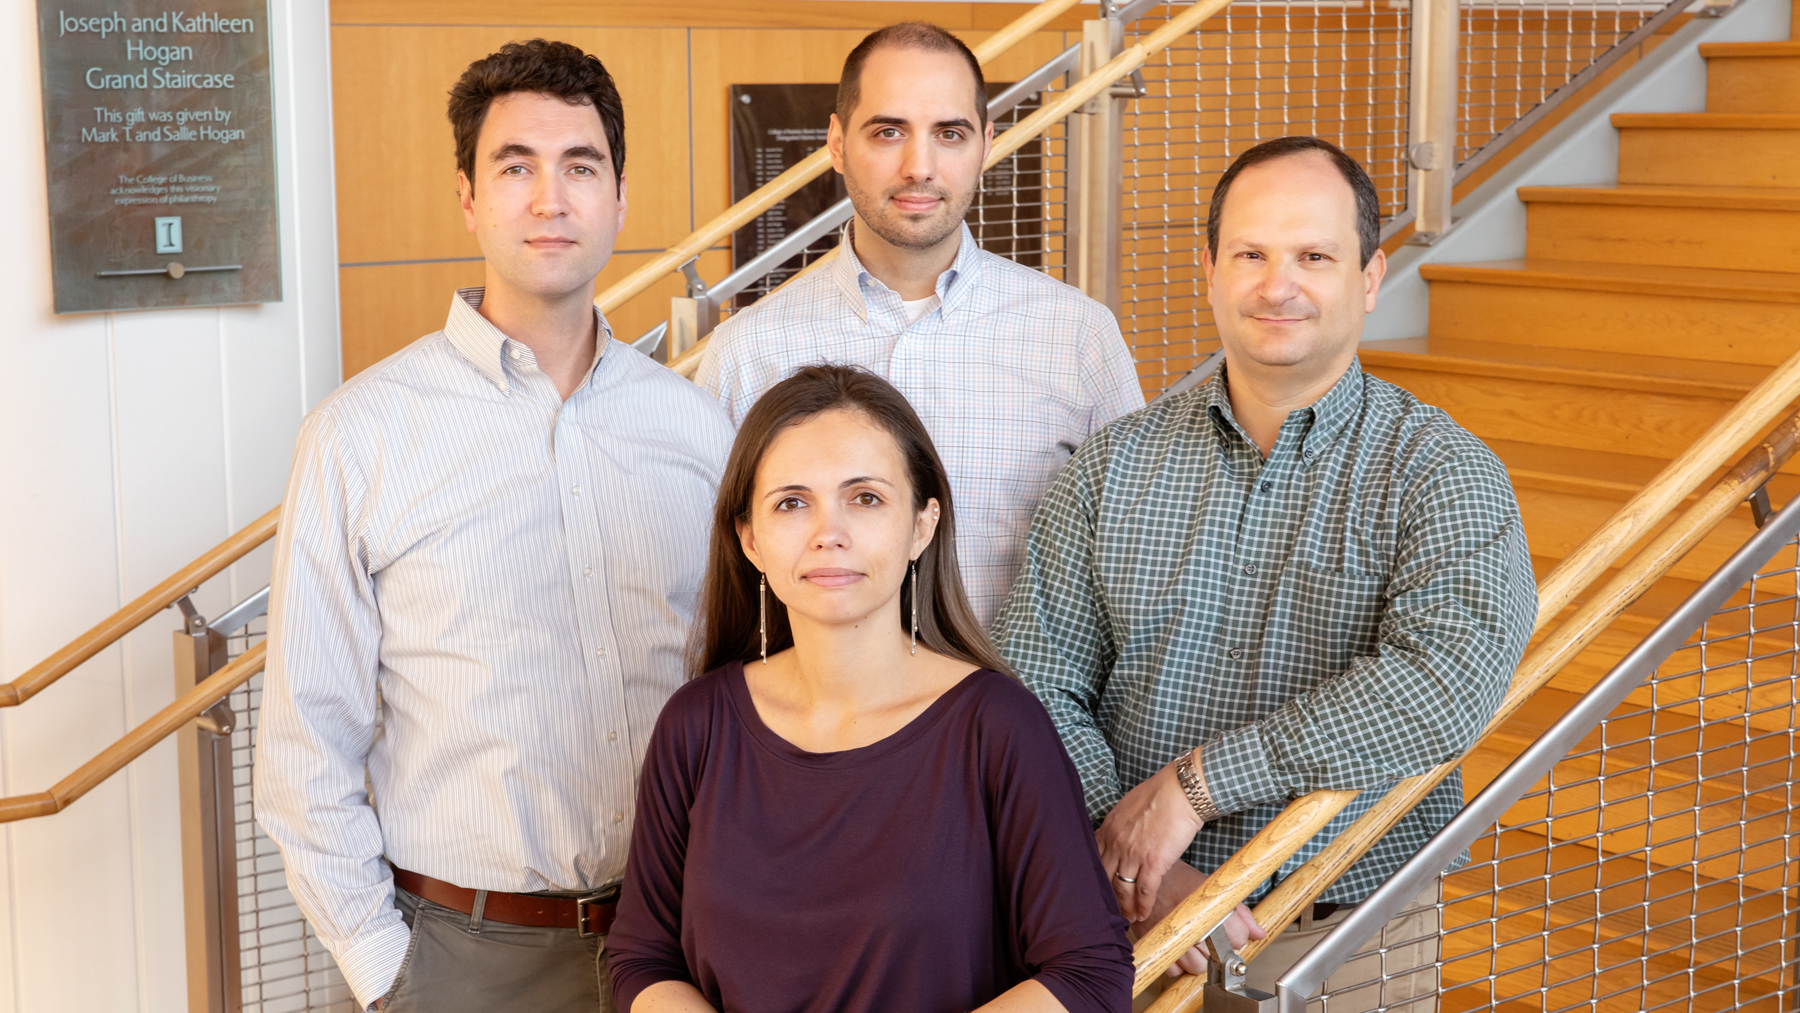 Scholars from the Gies College of Business at Illinois, including Julian Reif, Tatyana Deryugina, David Molitor and Nolan Miller